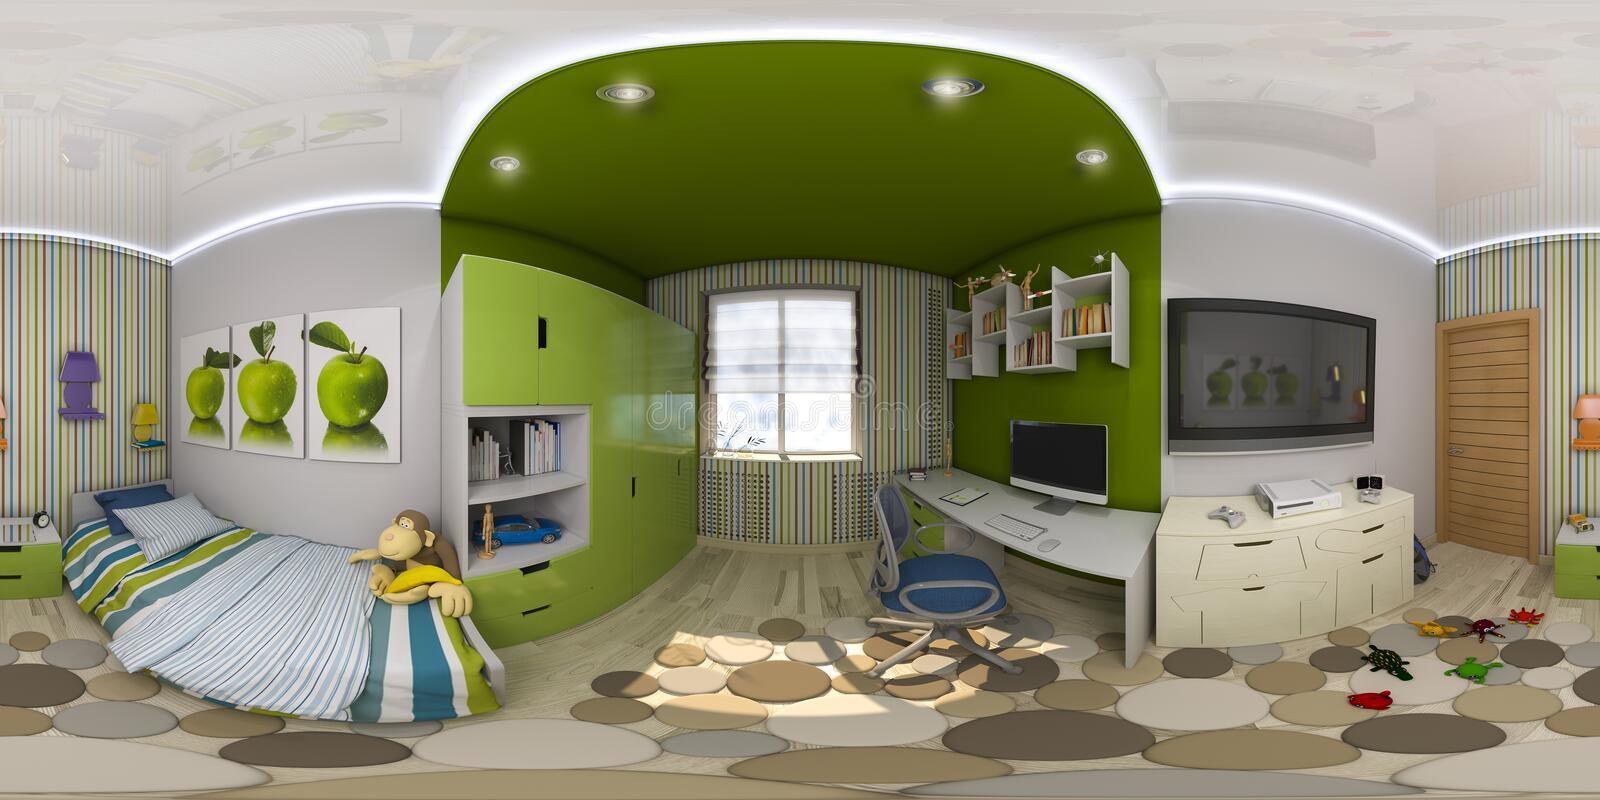 3d illustration spherical 360 degrees, seamless panorama of chil. Dren's room interior design. Design a child's room is in green and blue tones royalty free illustration